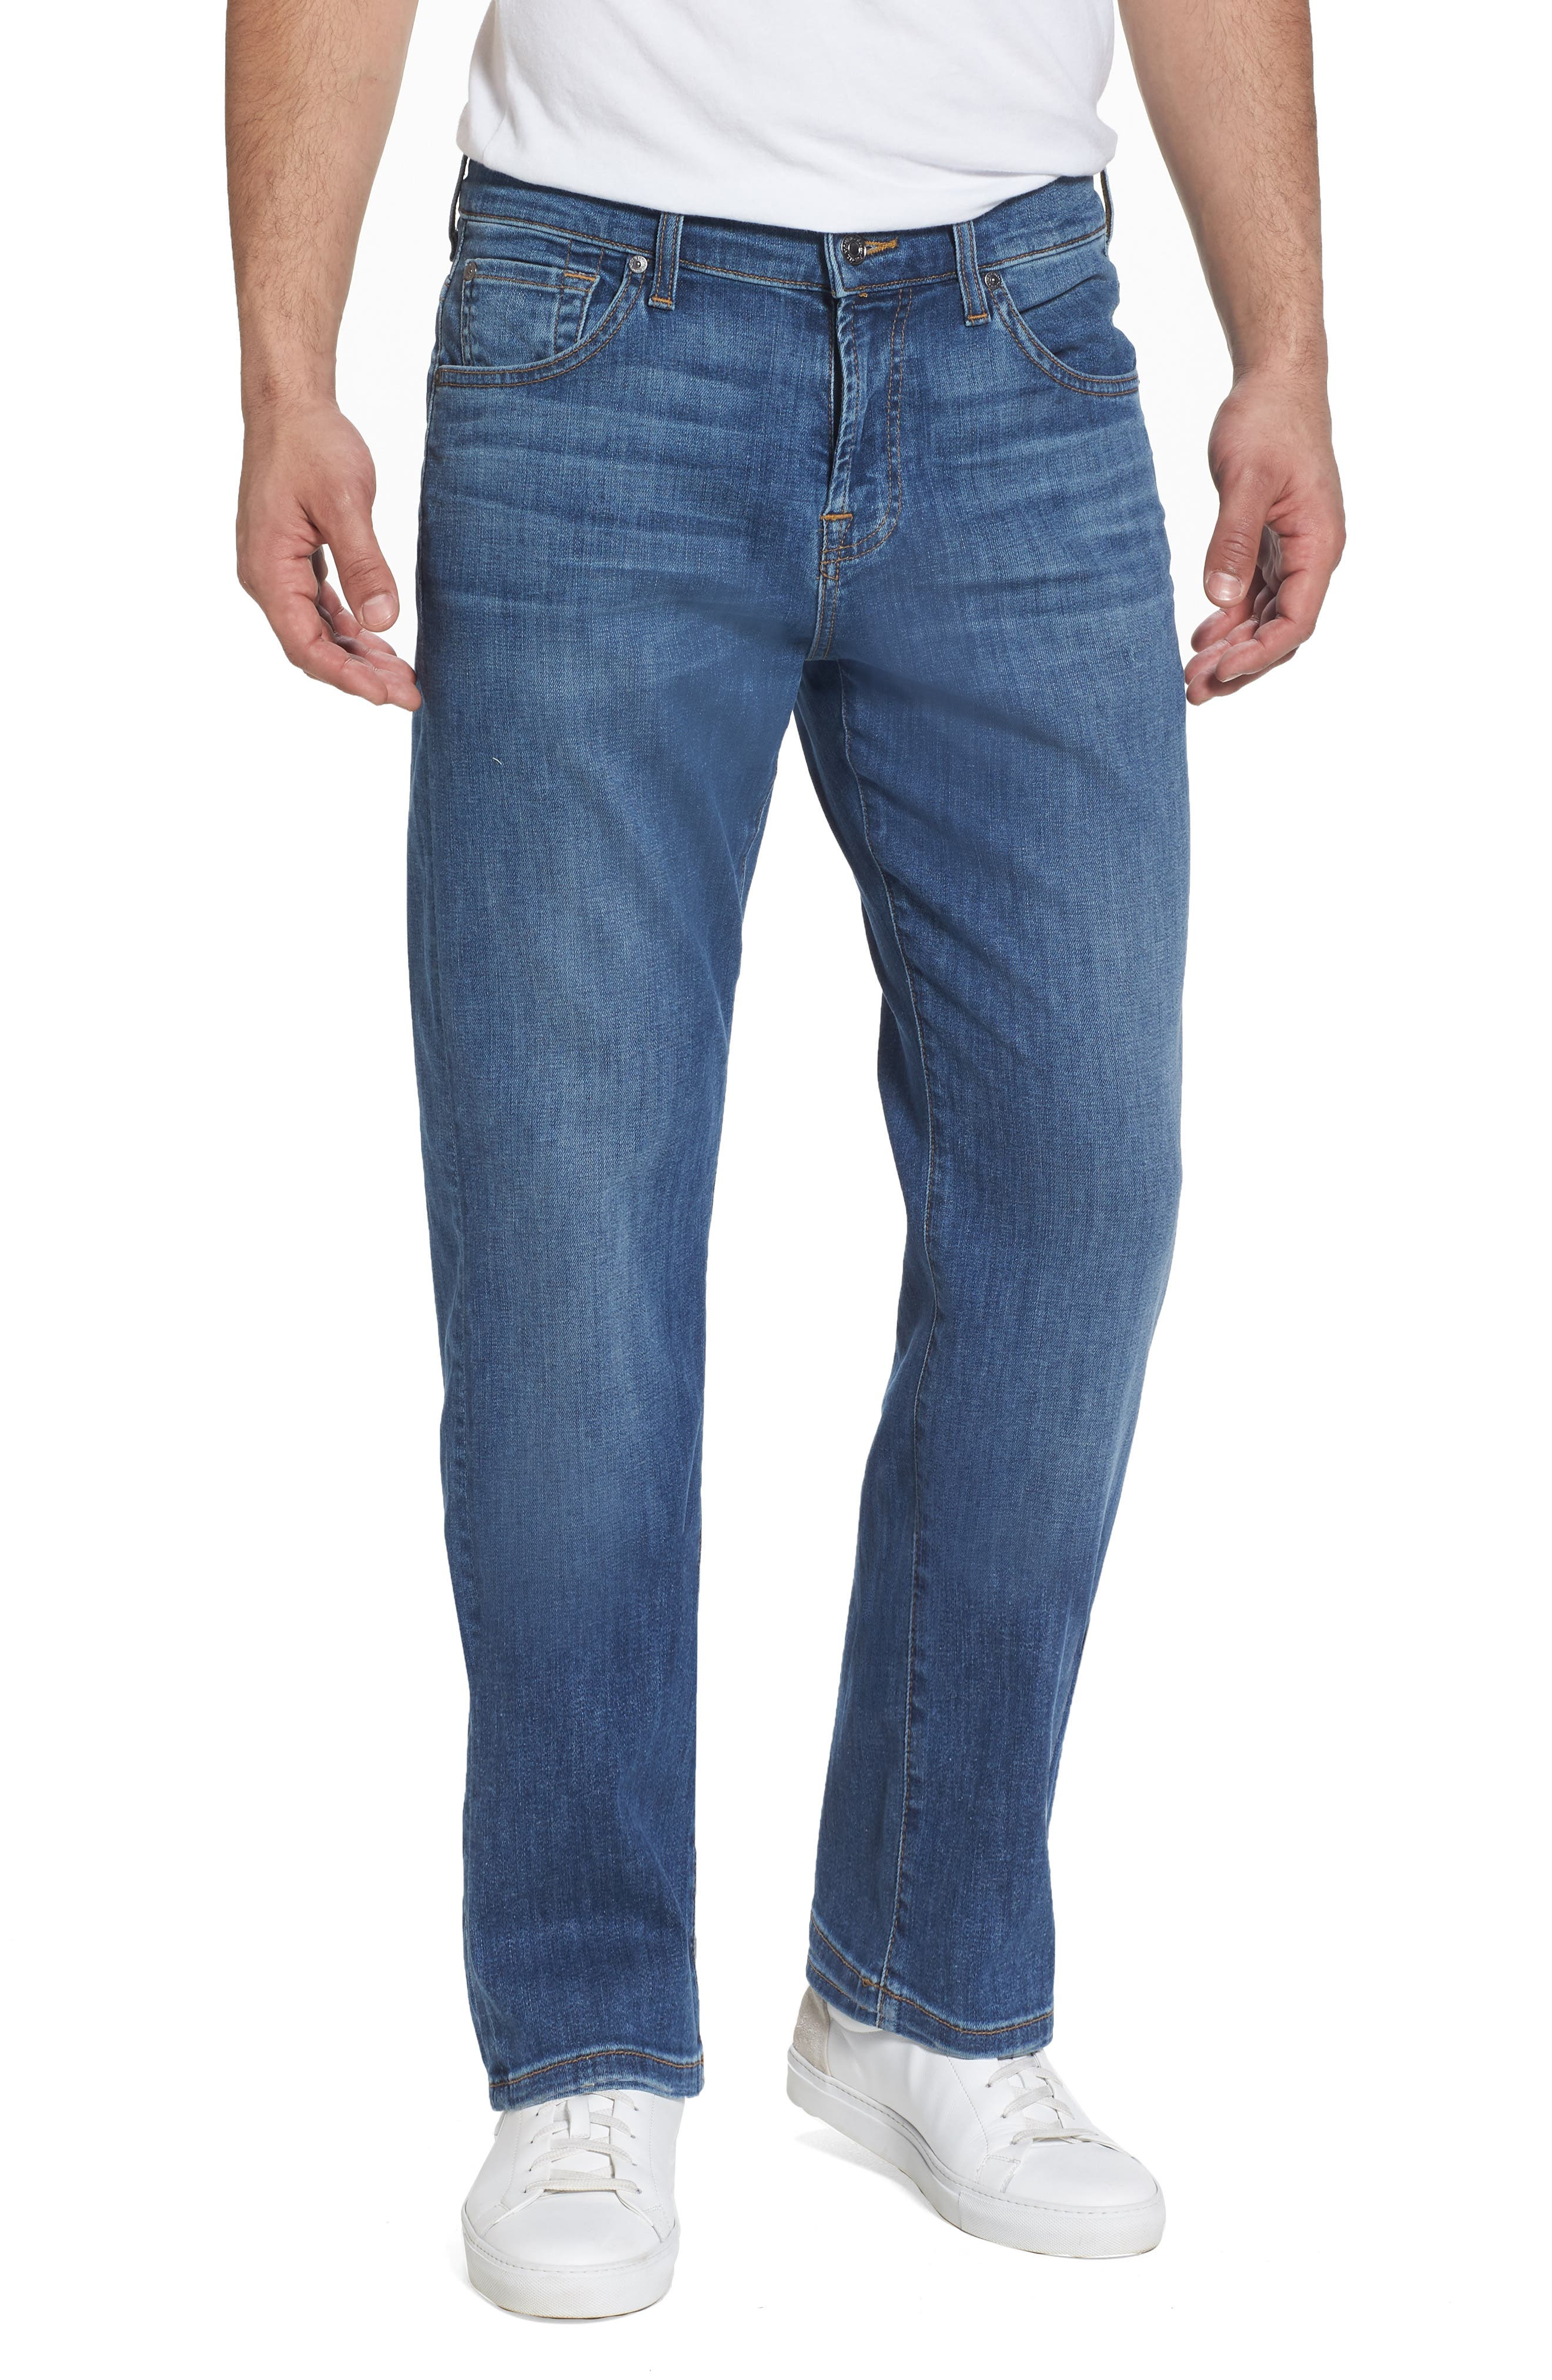 Austyn Relaxed Fit Jeans,                         Main,                         color, Rain Shadow